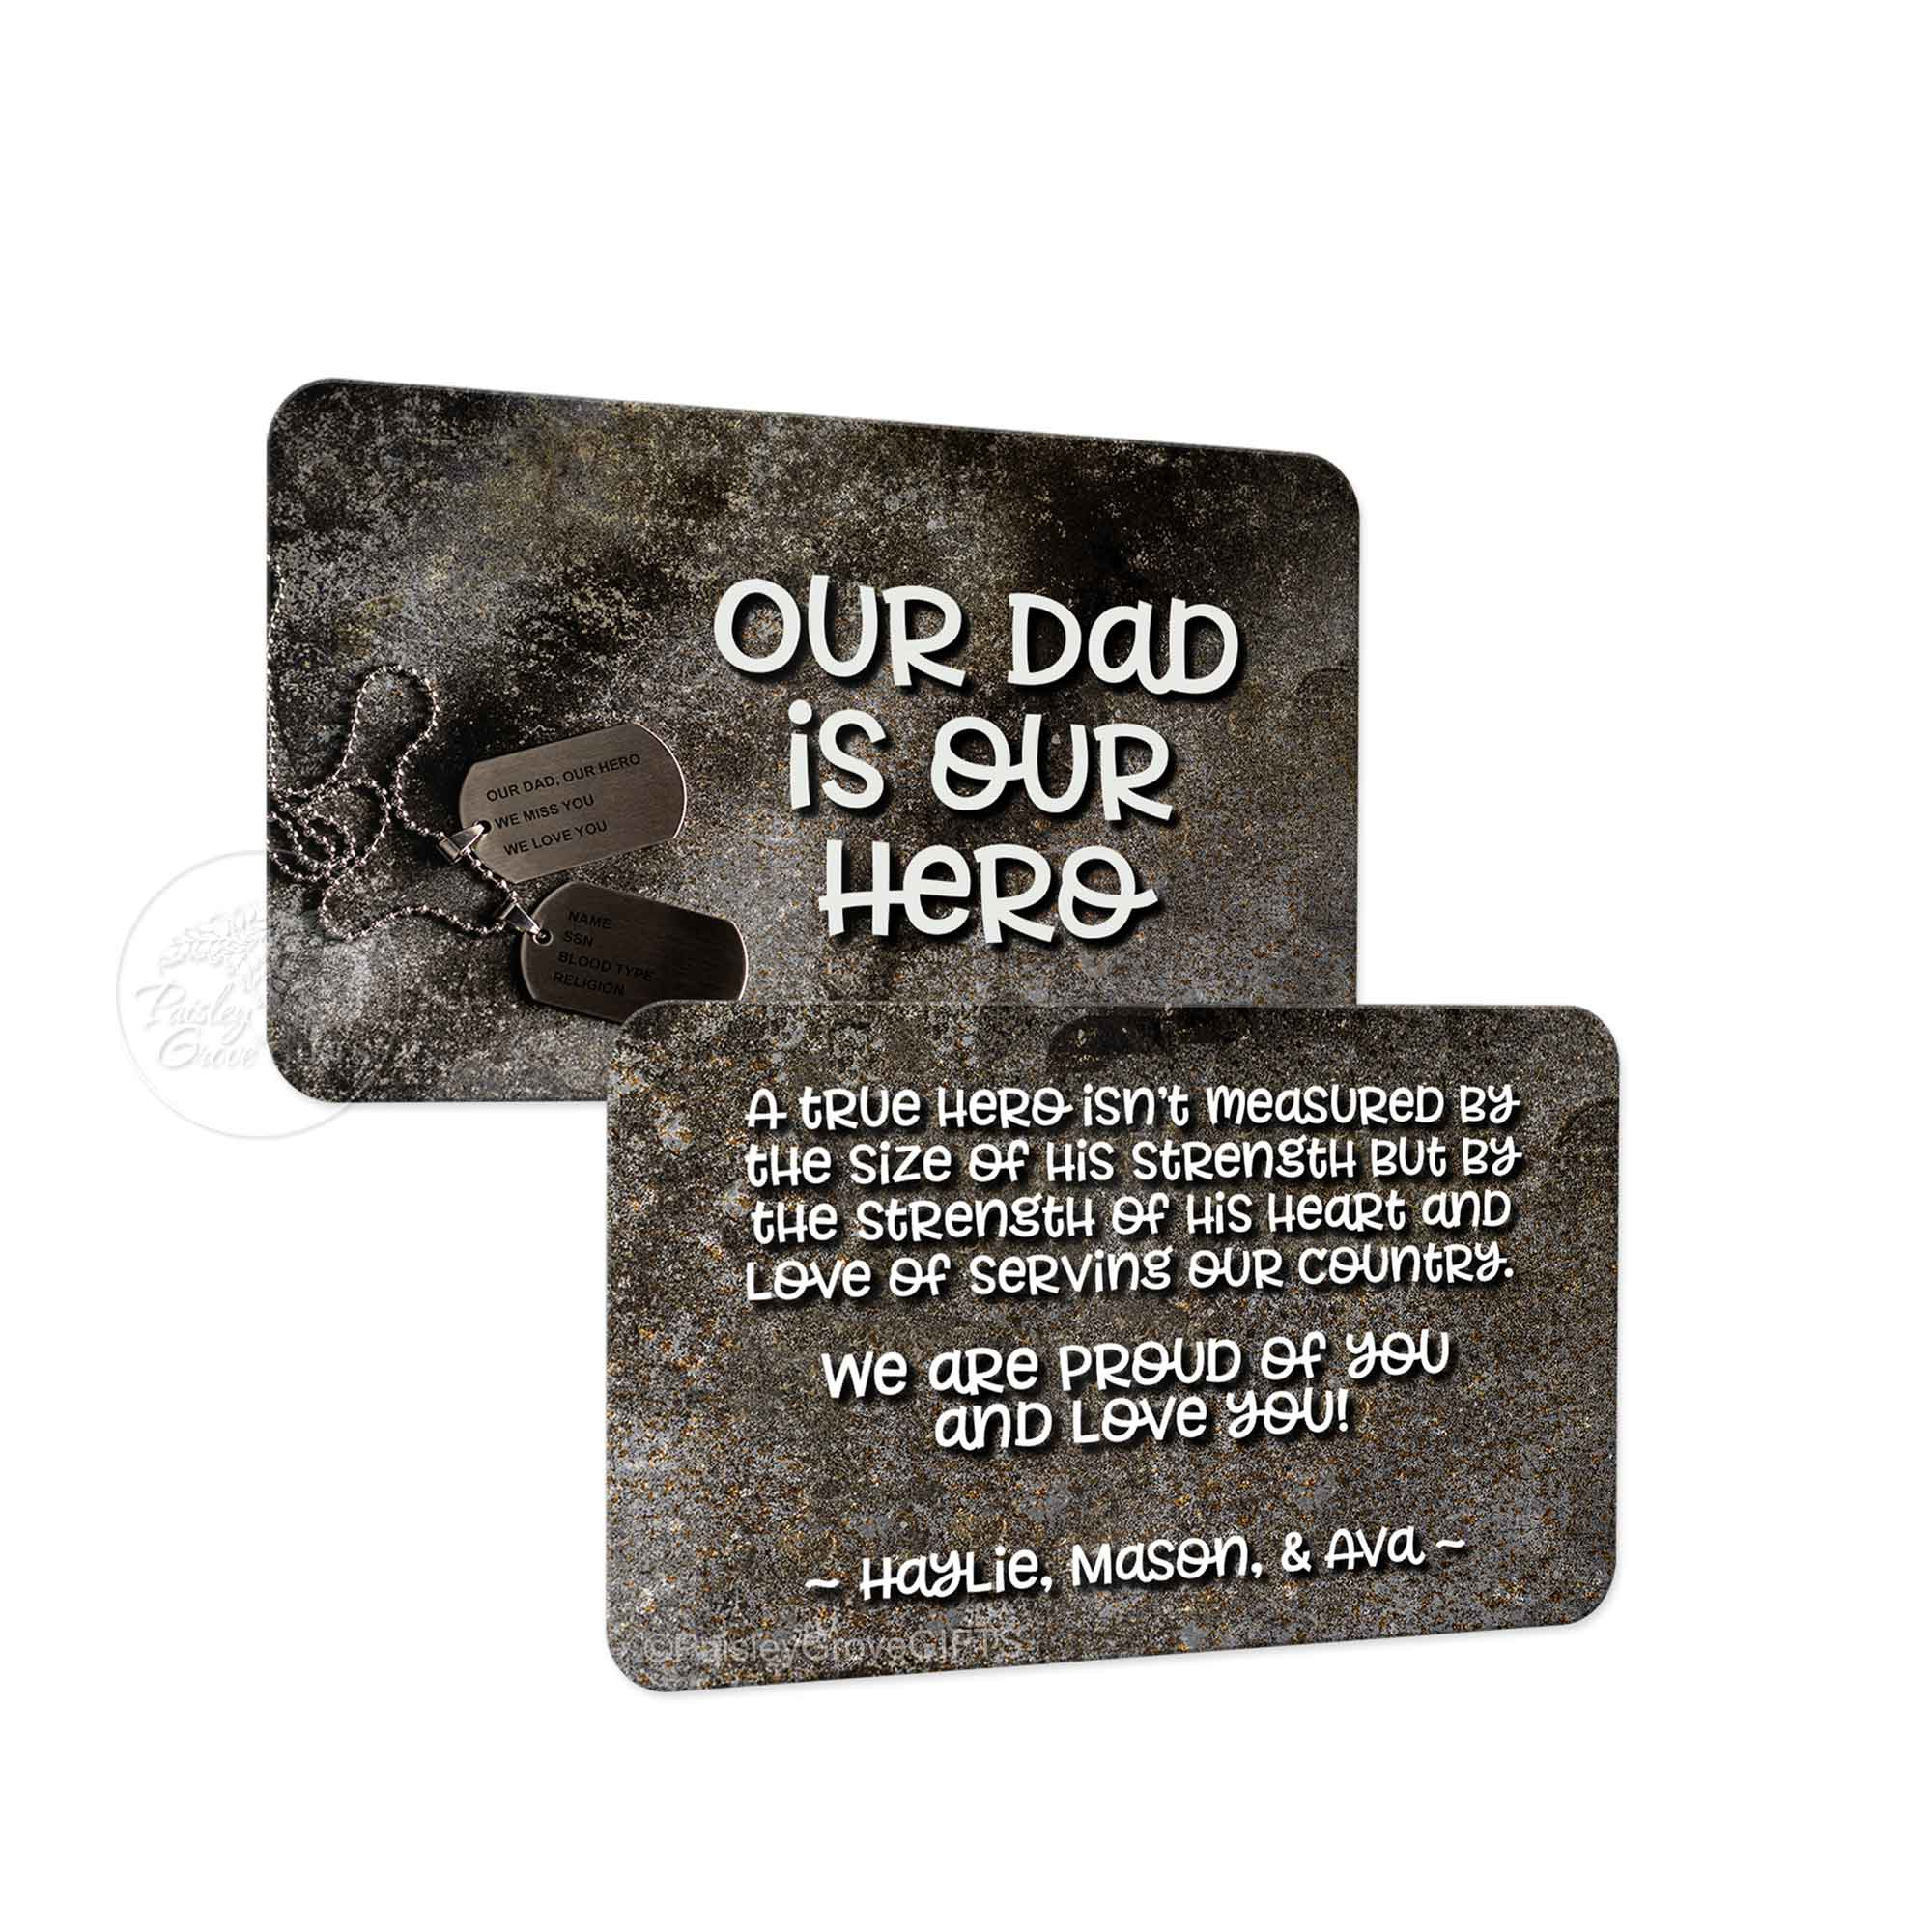 Copyright PaisleyGroveGIFTS S601a2 Personalized Metal Wallet Card Insert for Military Dad